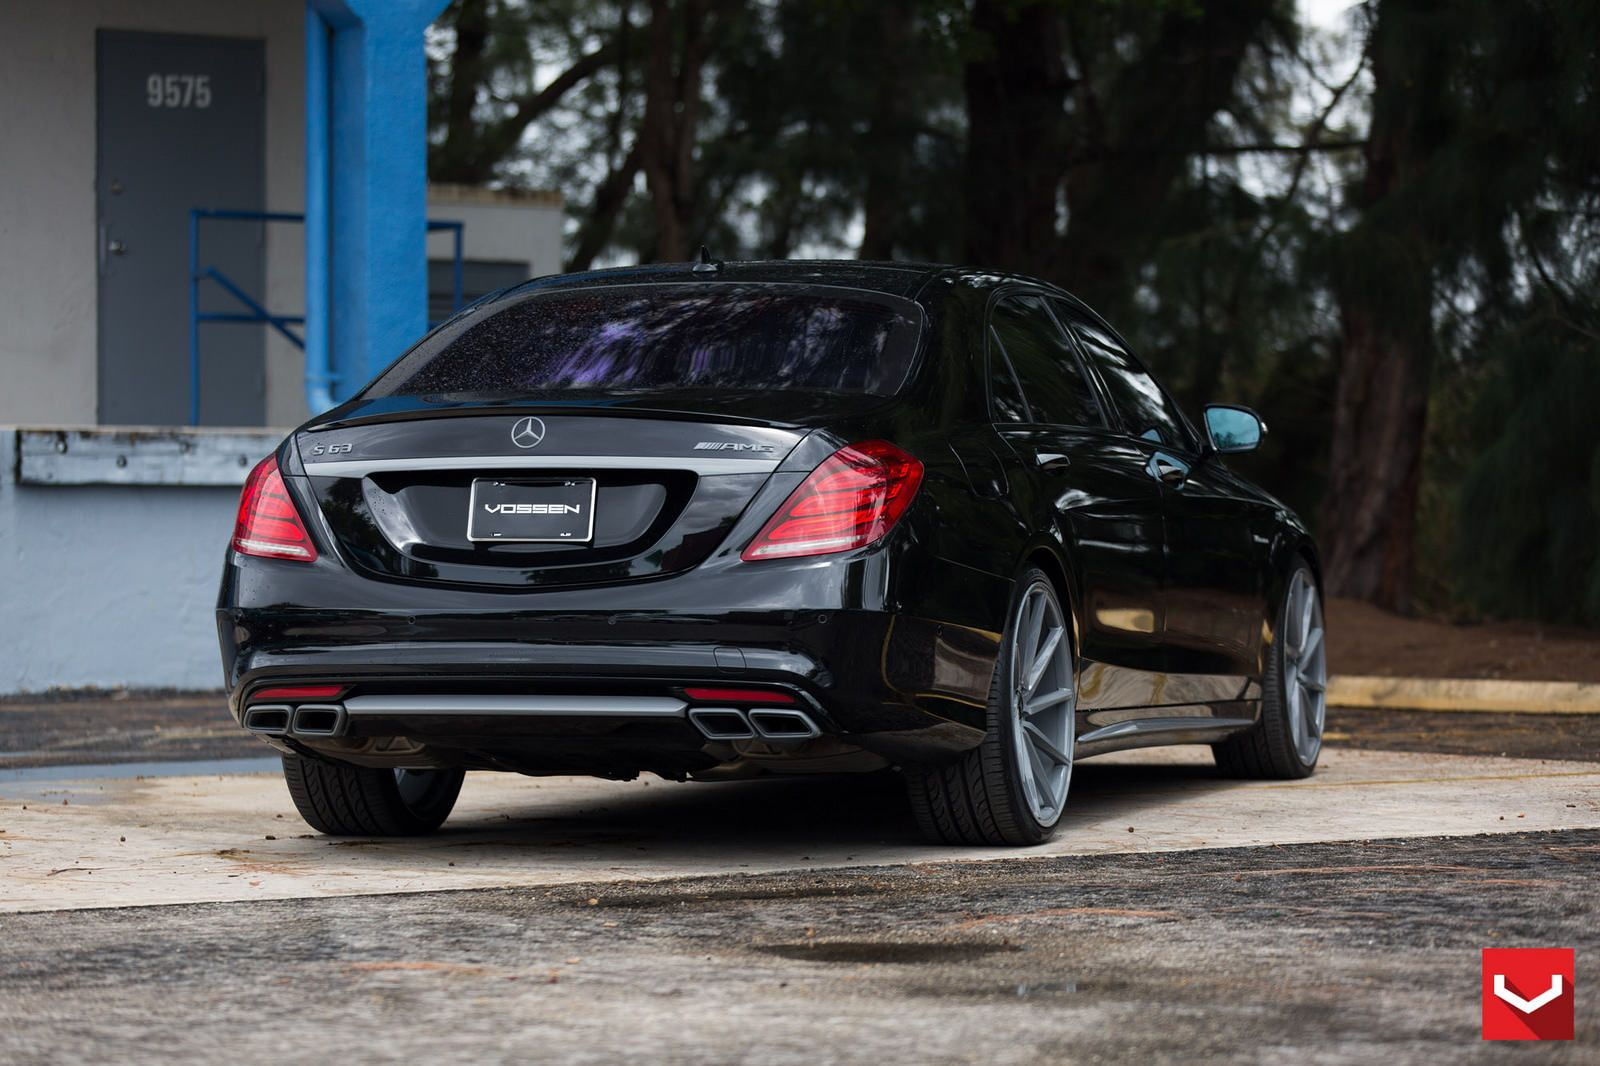 Mercedes Benz W222 S63 Amg On Vossen Cvt Wheels And